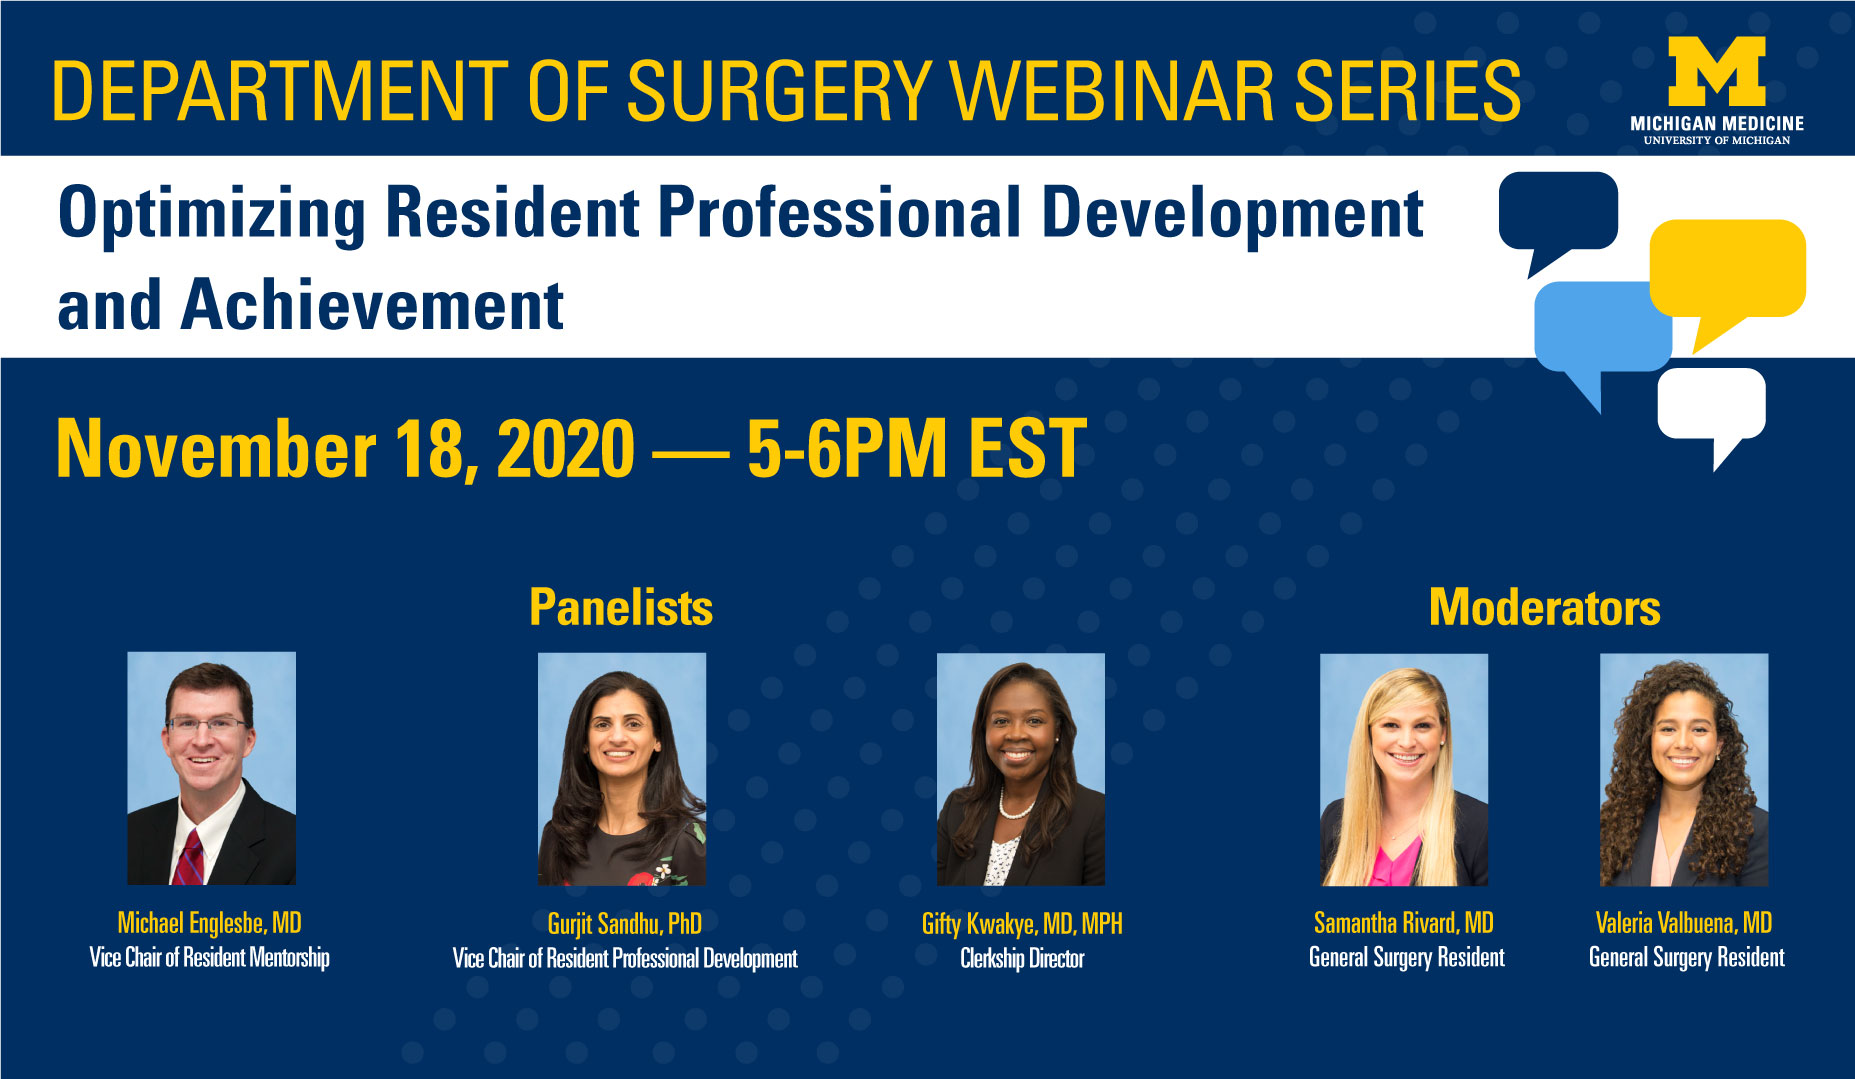 Department of Surgery Webinar Series November 18, 2020 from 5-6 PM (EST): Optimizing Resident Professional Development and Achievement